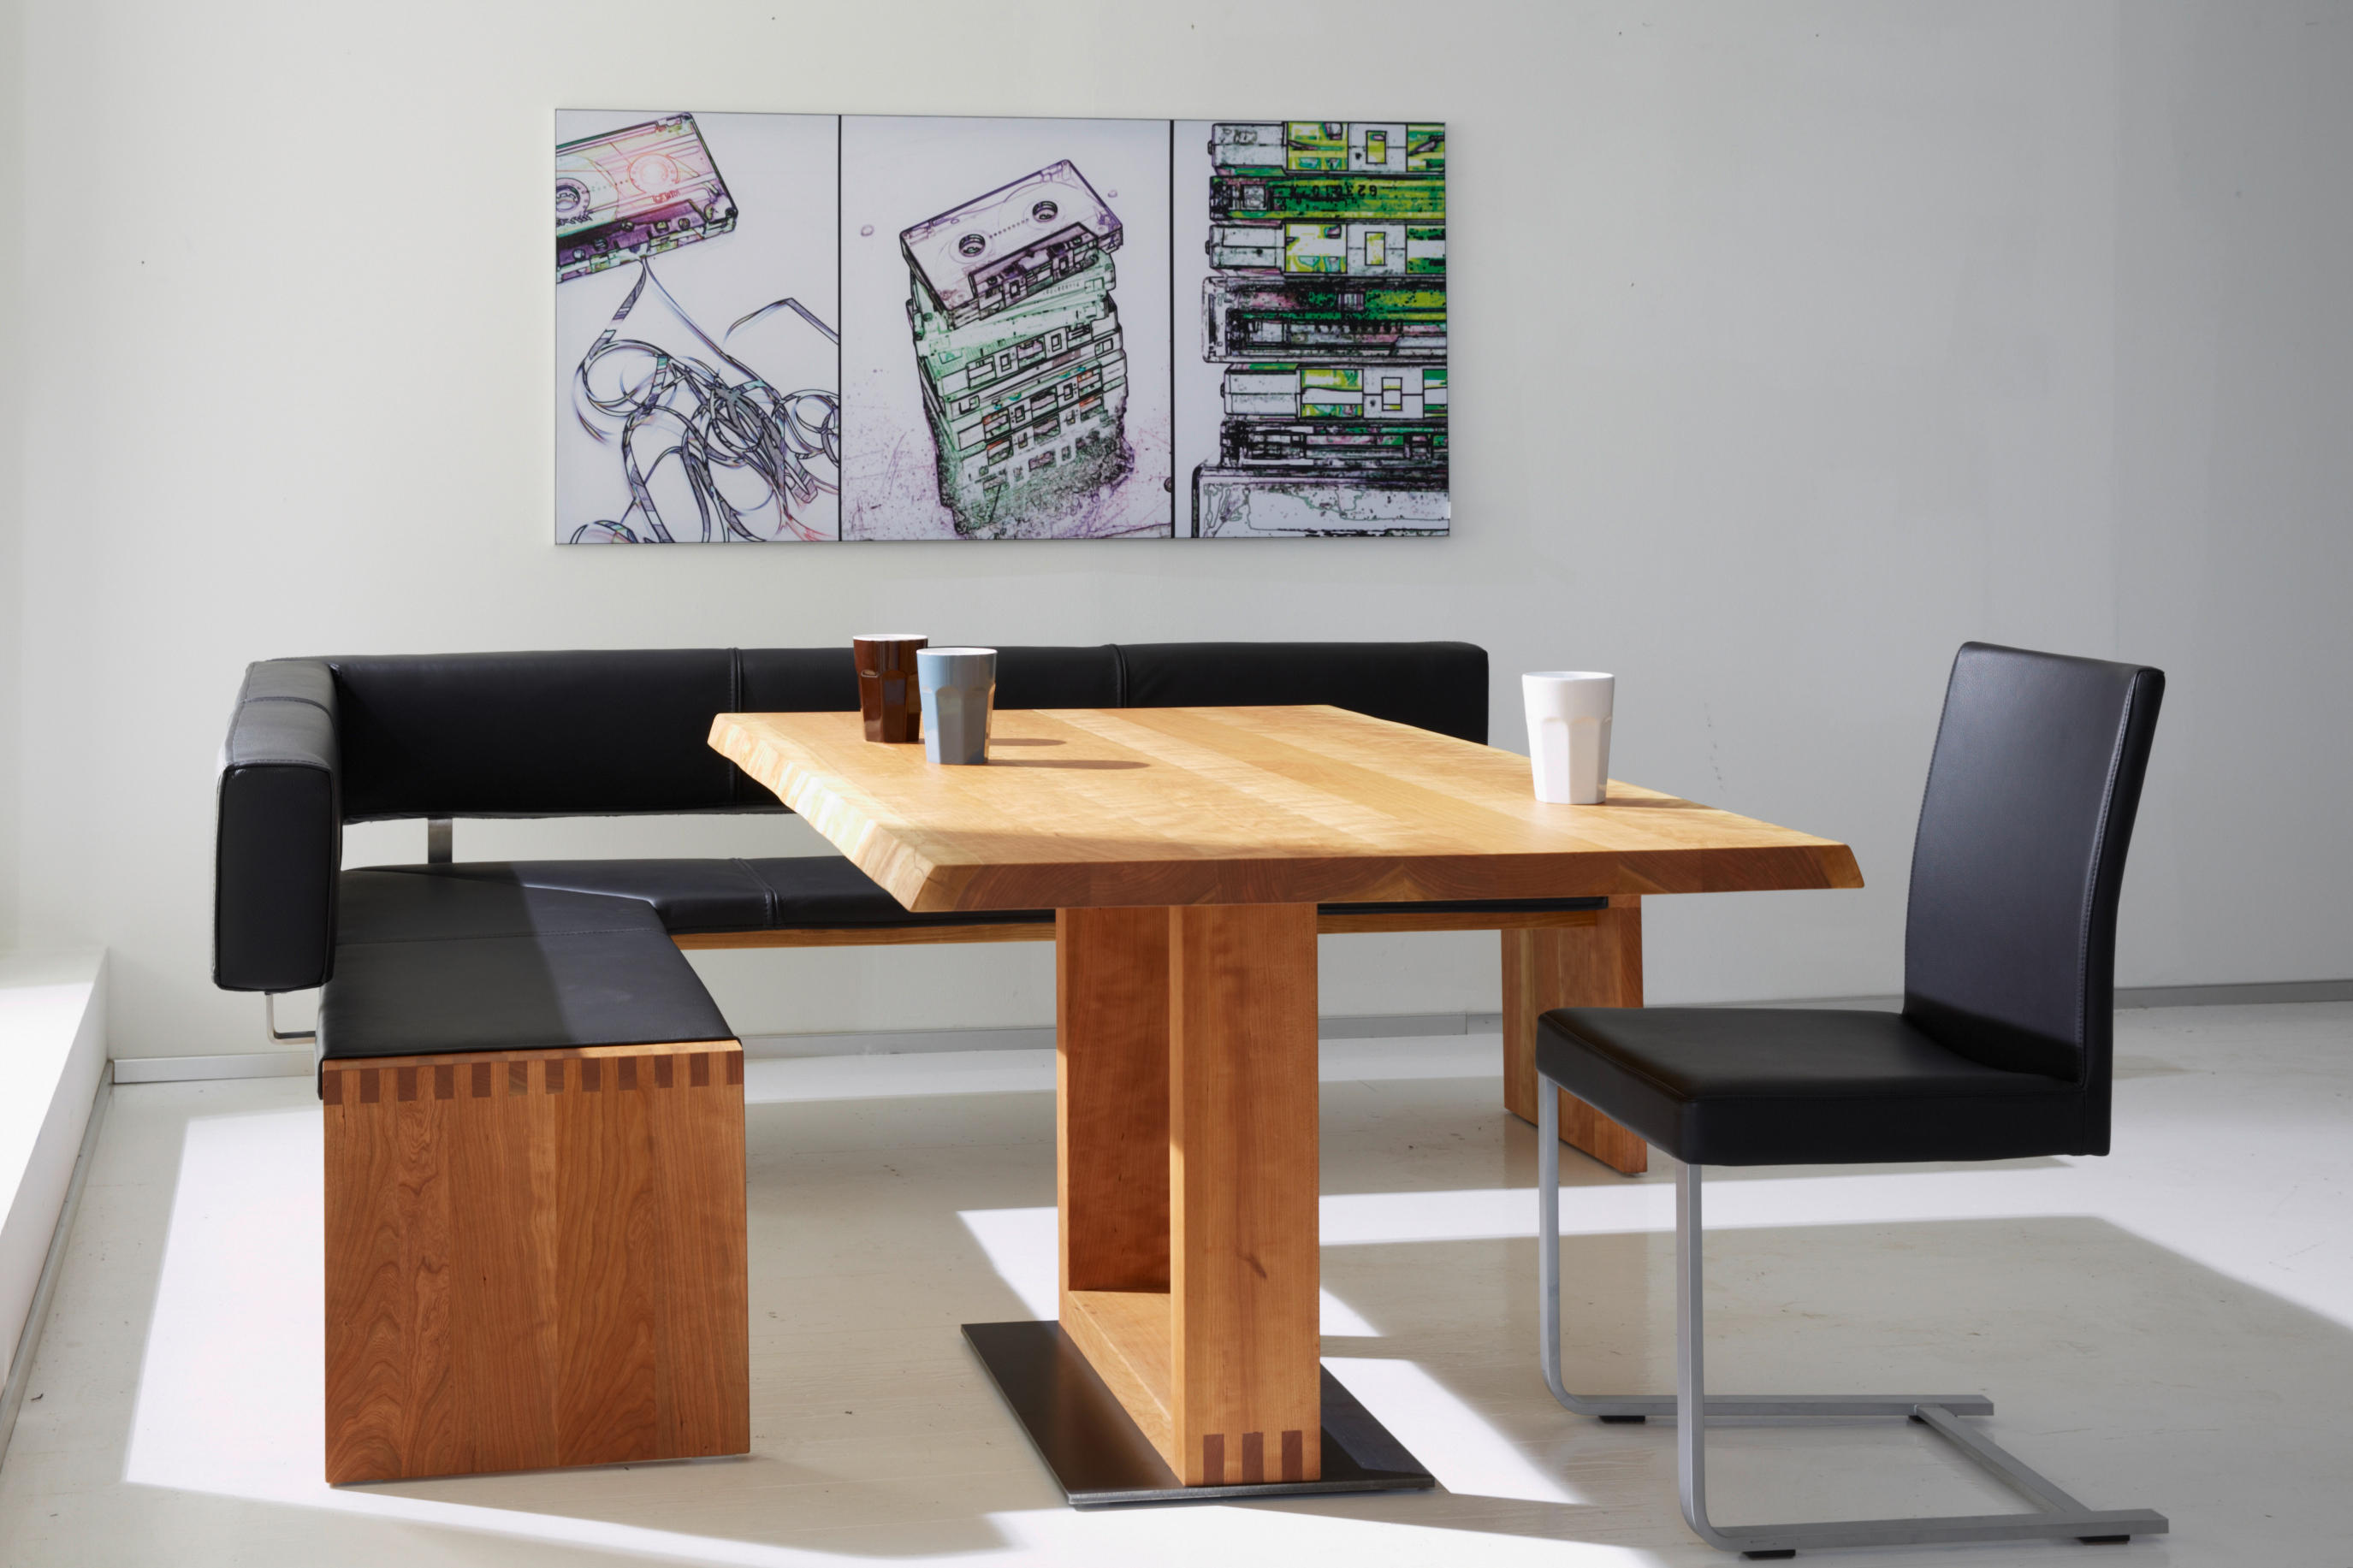 Design Eckbank Sd05 Bench Benches From Schulte Design Architonic